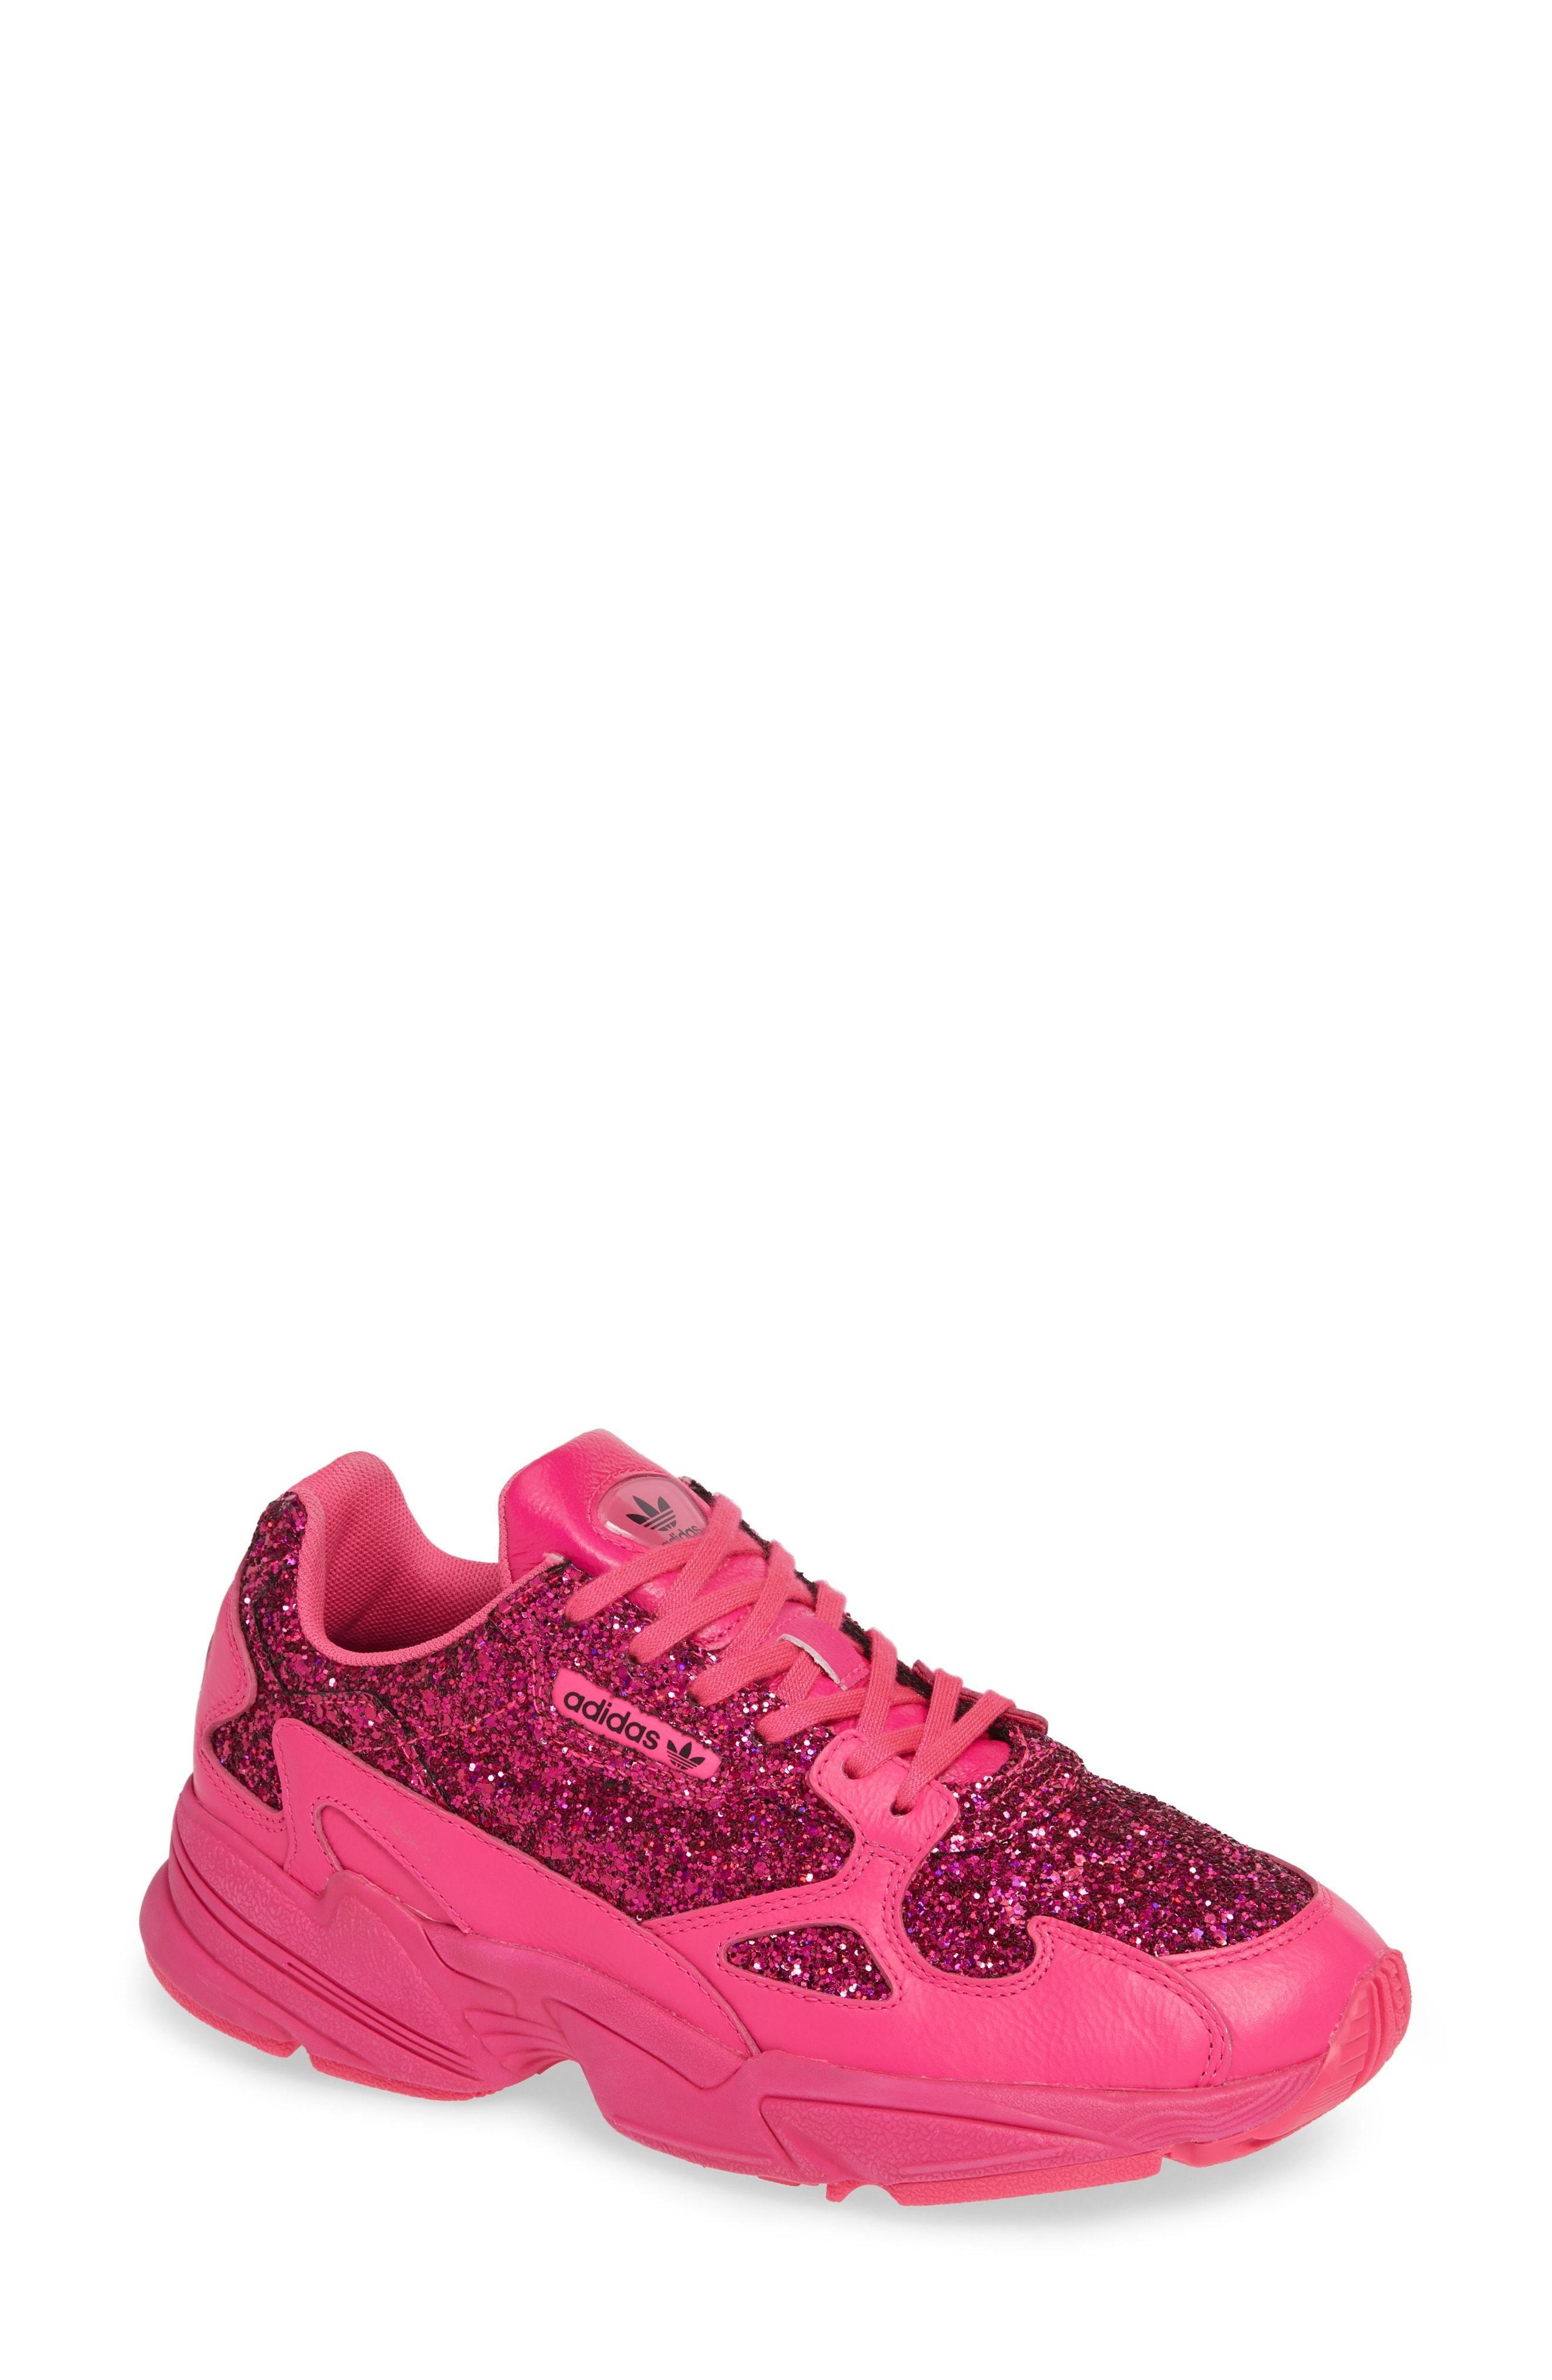 Adidas - Pink Falcon Out Loud Sneakers - Lyst. View fullscreen 986b7205a